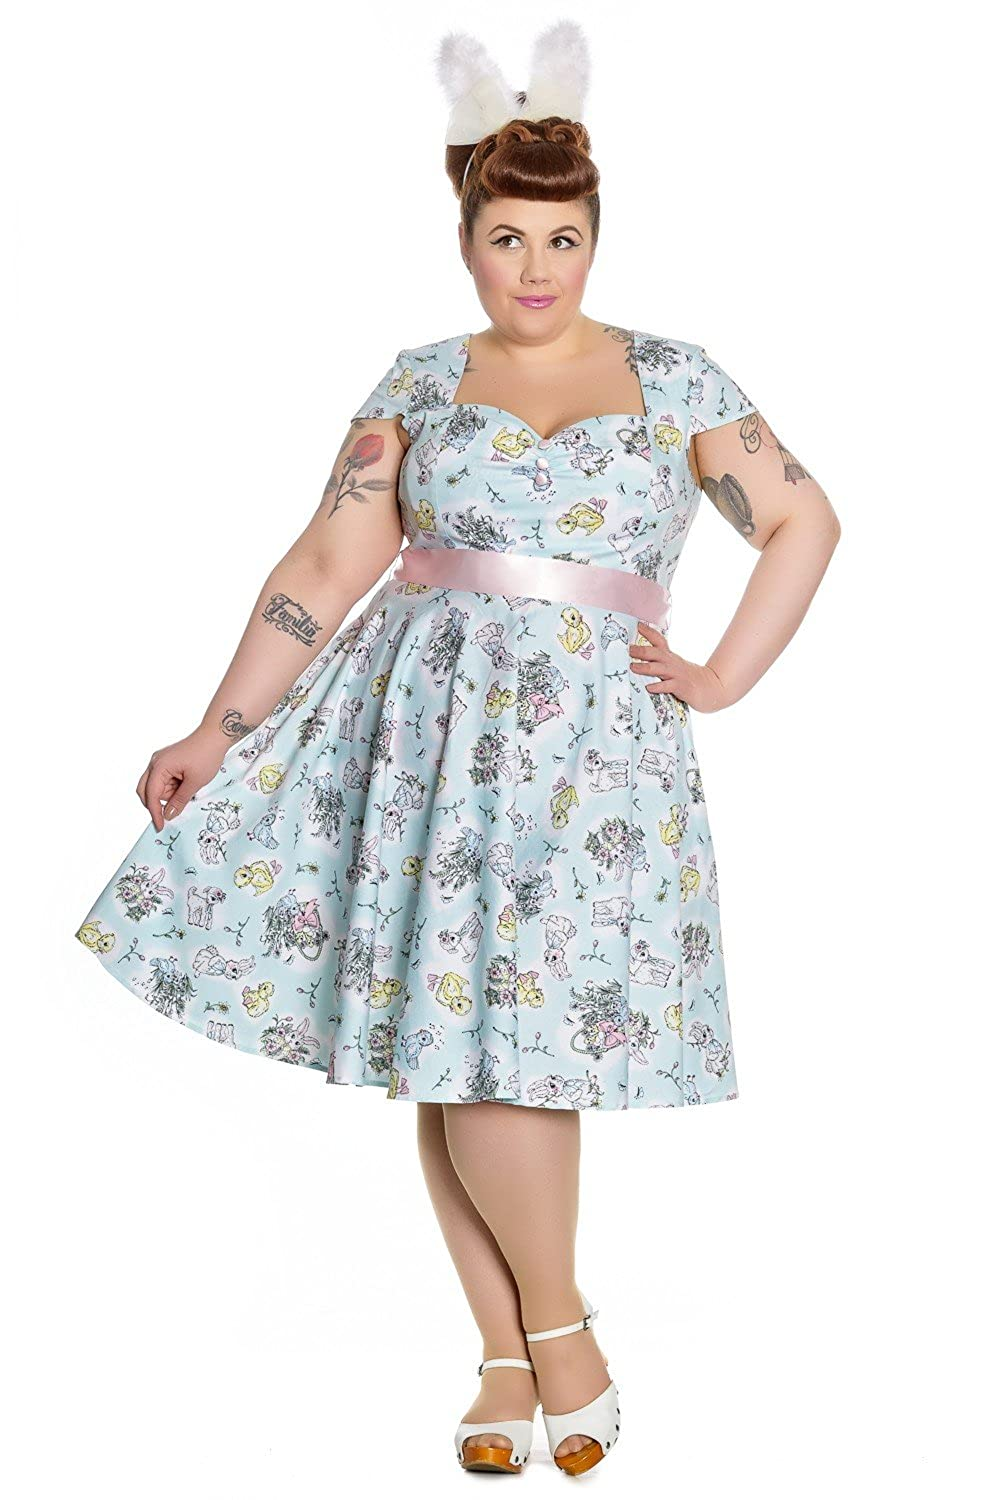 Rockabilly Dresses | Rockabilly Clothing | Viva Las Vegas Hallmark Easter Bunny Mint Blue Party Dress $79.95 AT vintagedancer.com